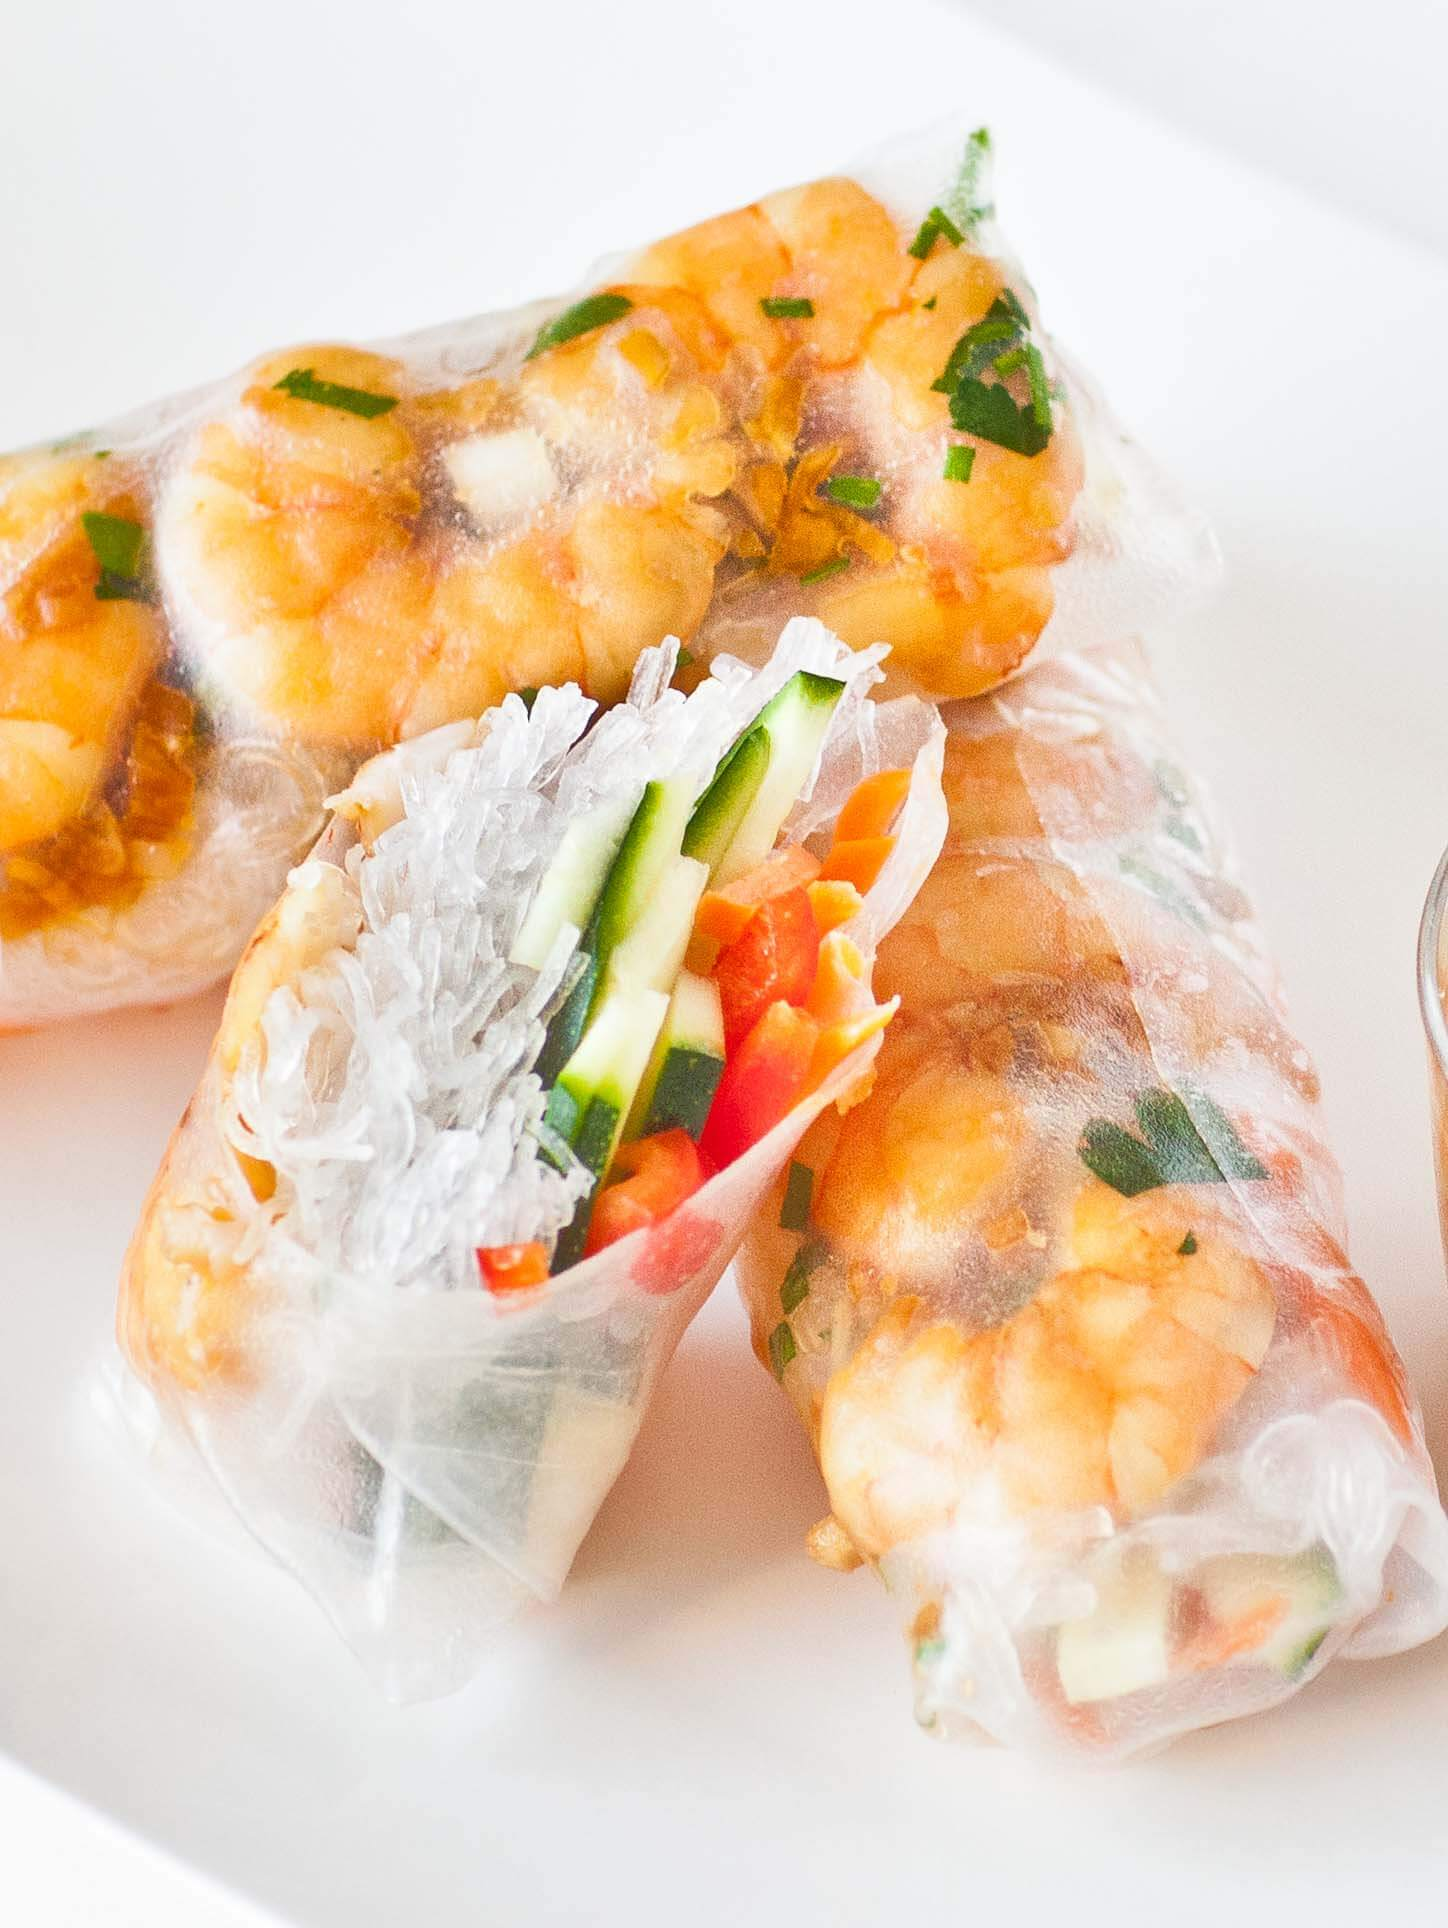 shrimp spring rolls with veggies